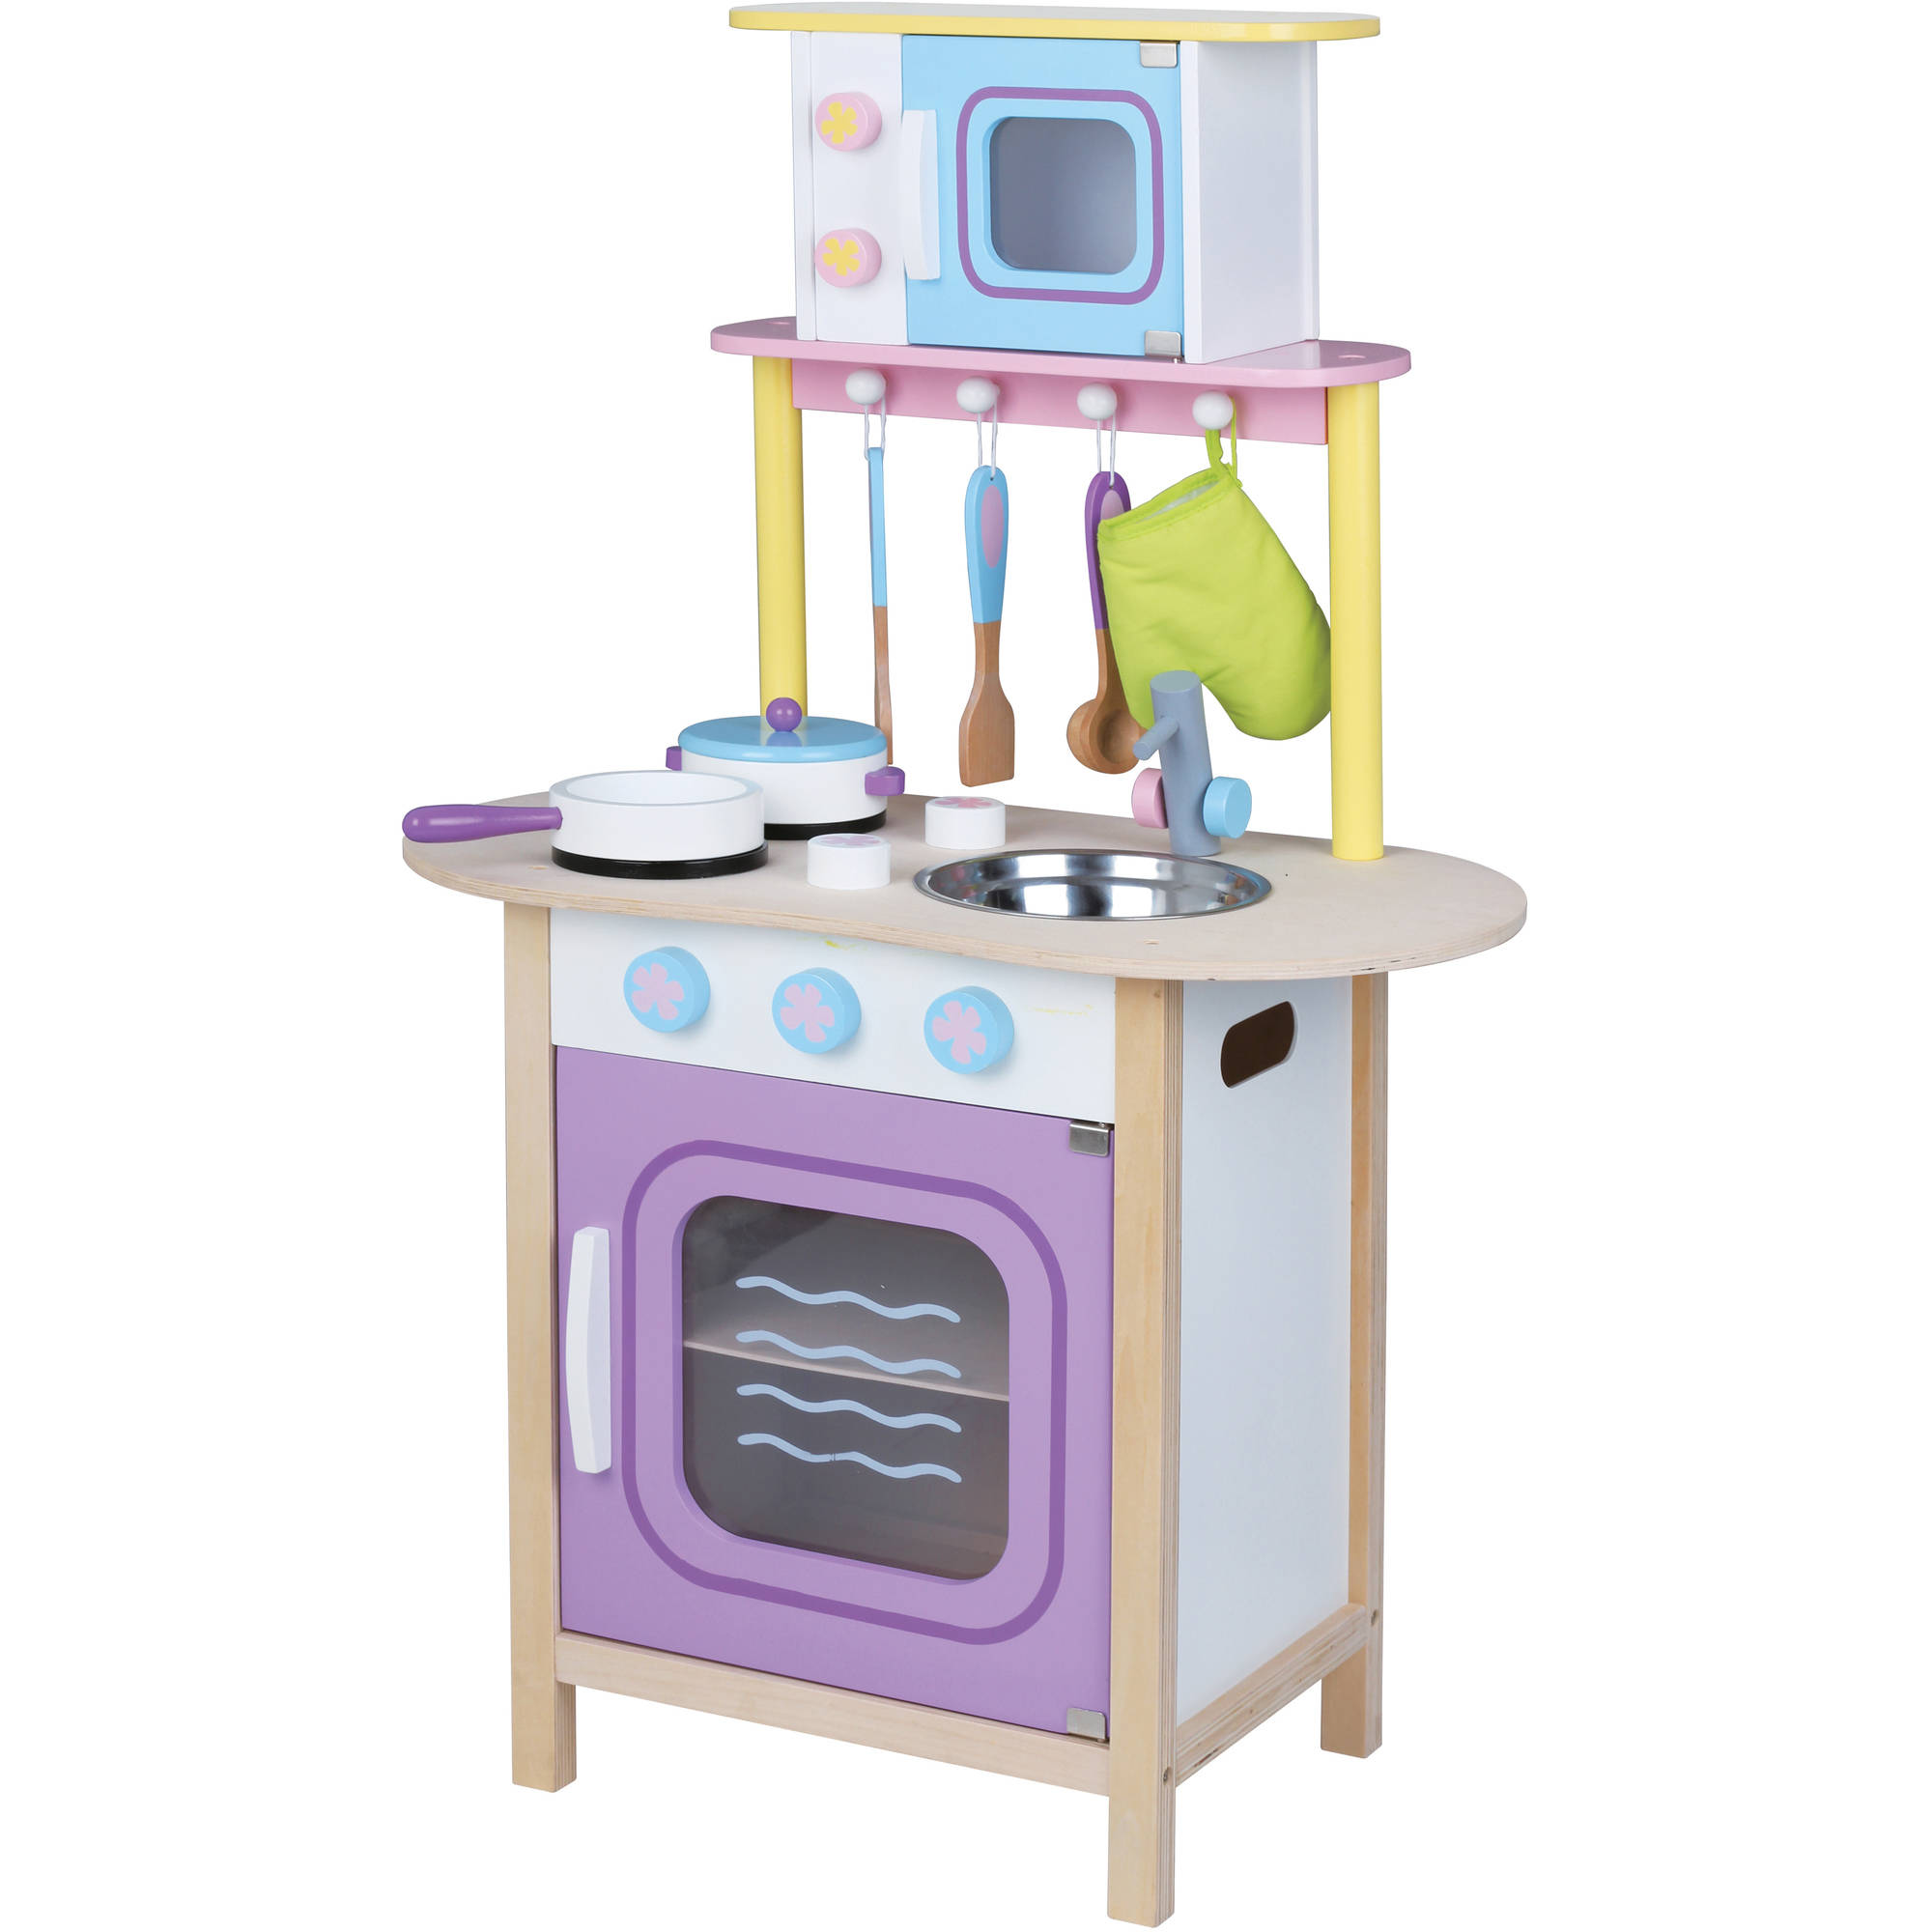 Windsor Kitchen with Microwave